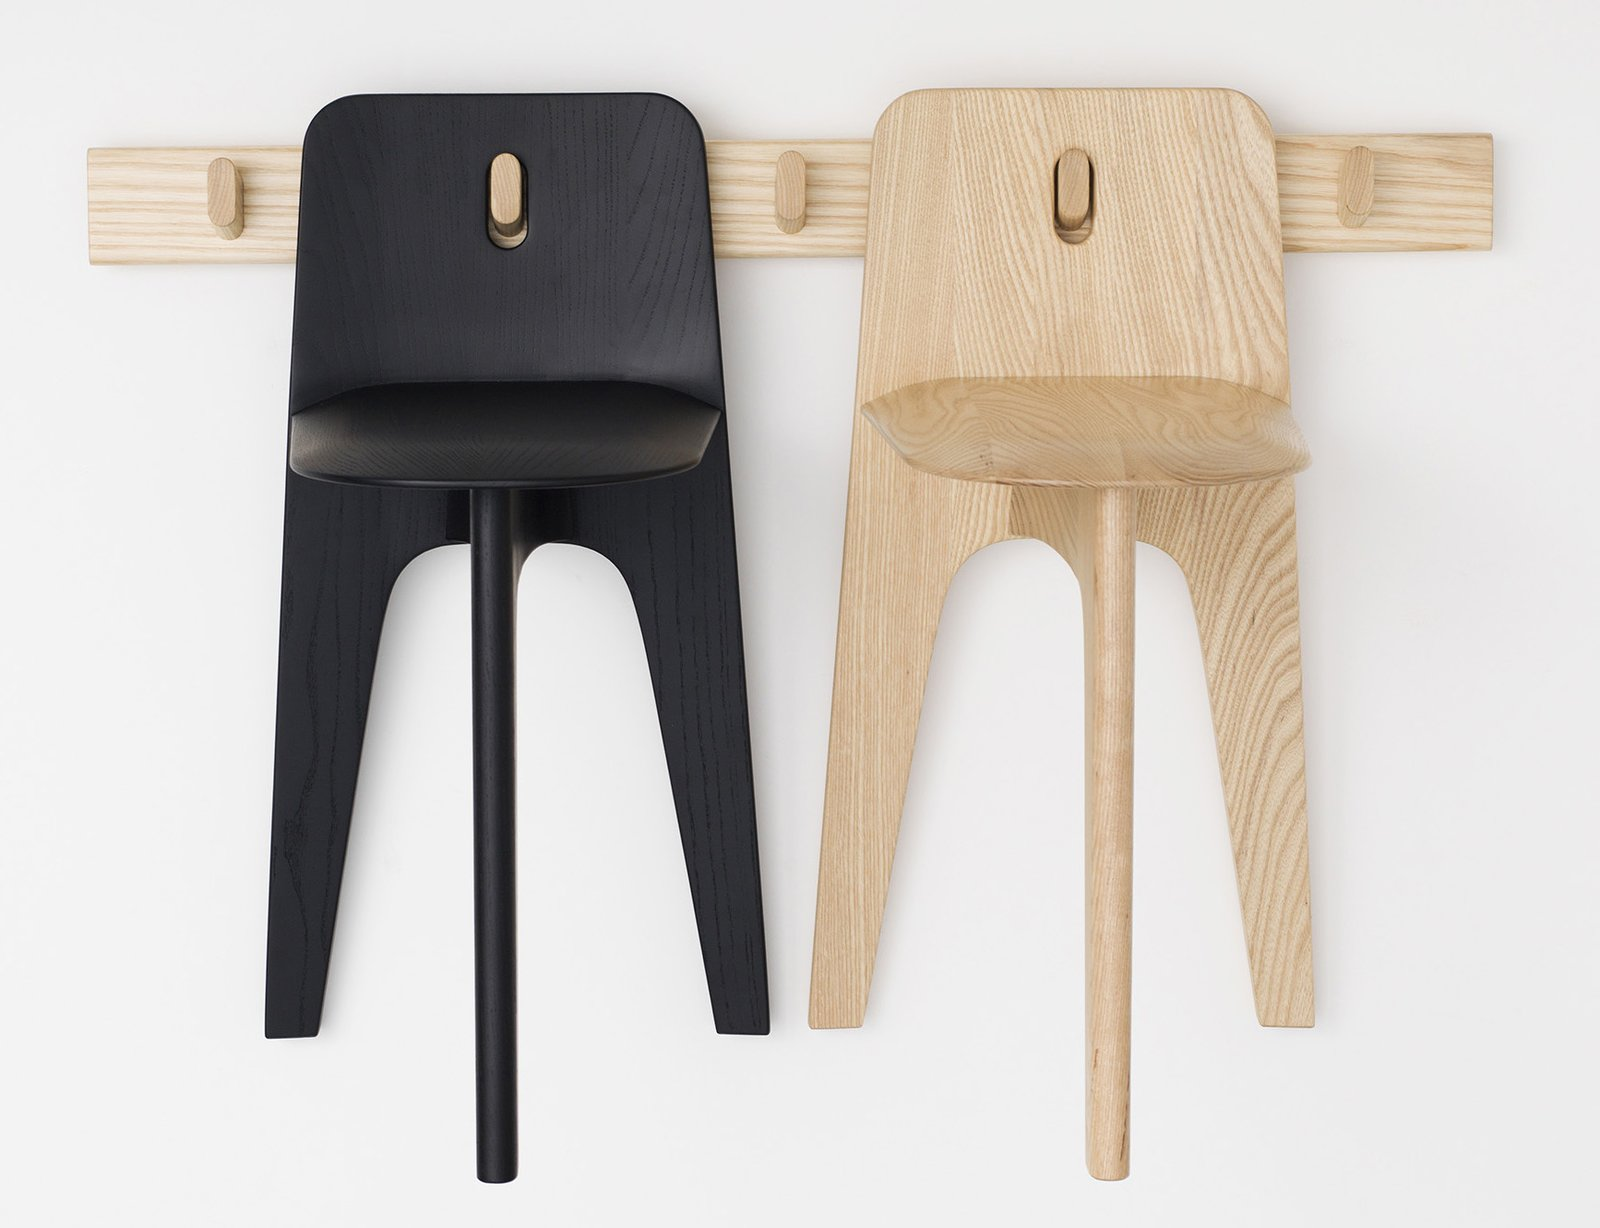 The Stove Chair for Bla Station by Gabriel Tan Studio.